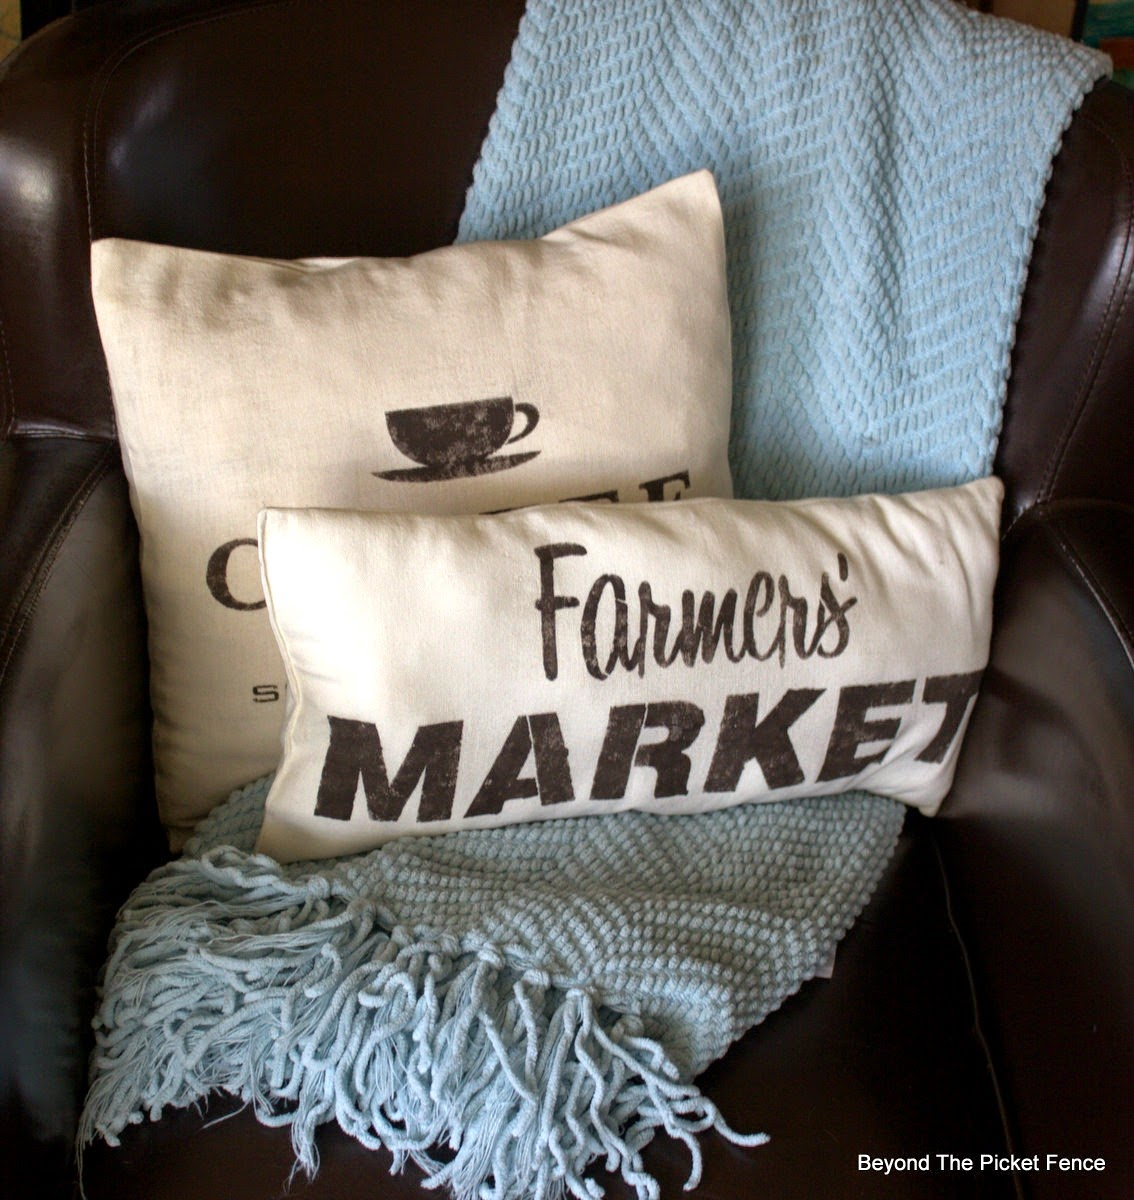 pillows, farmers market, coffee sign, stencil, beyond the picket fence, http://bec4-beyondthepicketfence.blogspot.com/2015/03/project-challenge-linenleather-fabric.html